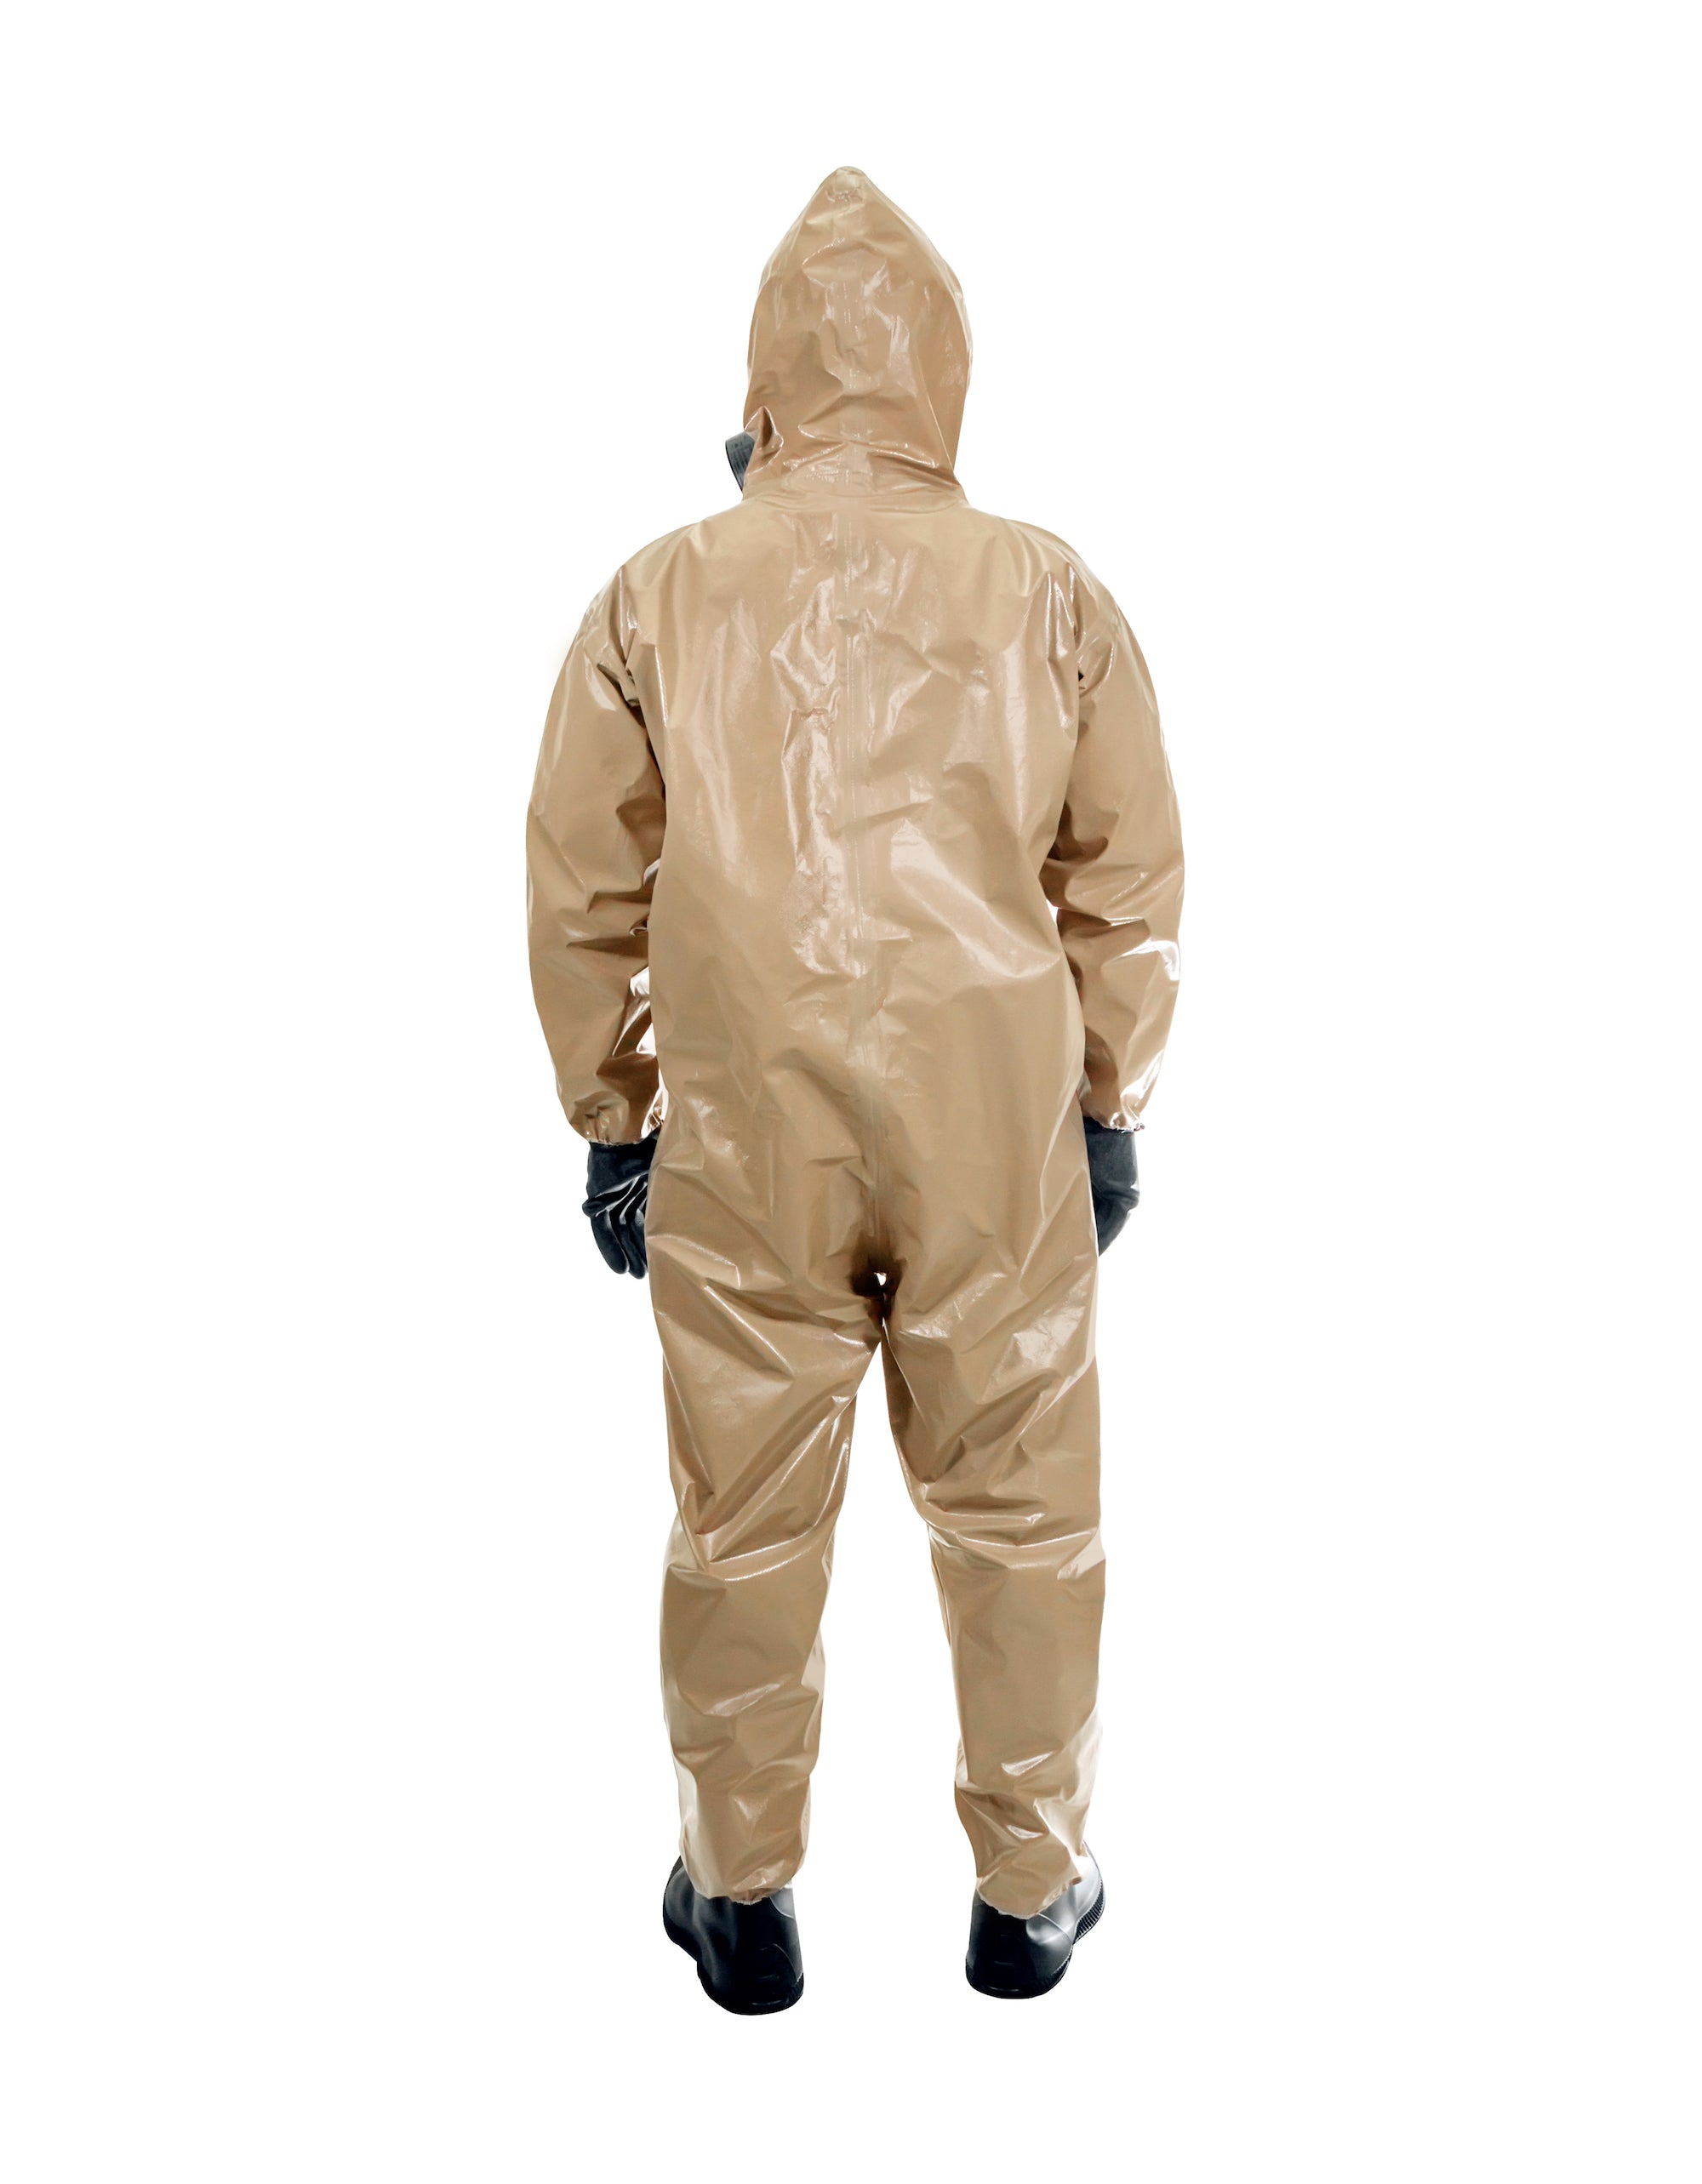 Rear view of a man wearing the HAZ-SUIT HAZMAT Suit